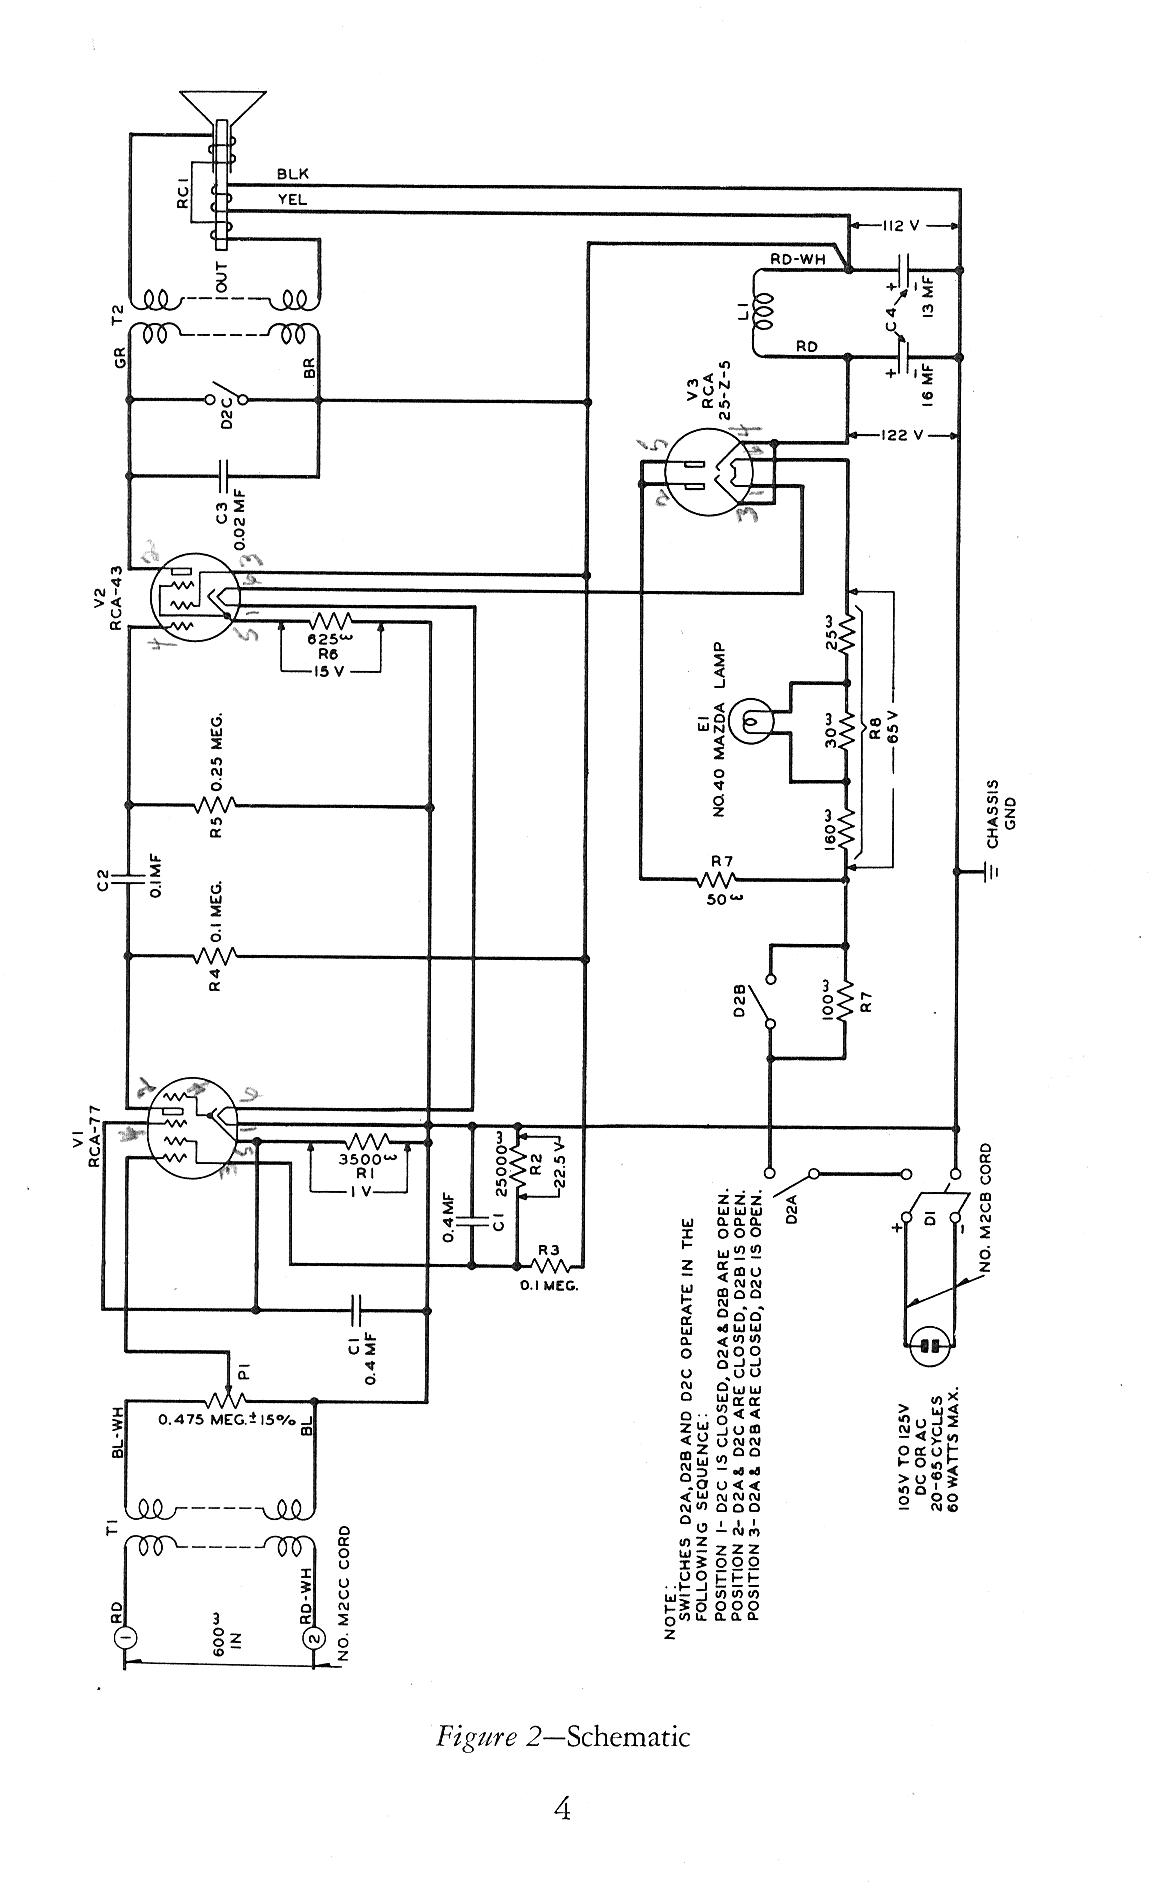 Electrical Wiring Diagrams Furthermore Electrical Wiring Diagram